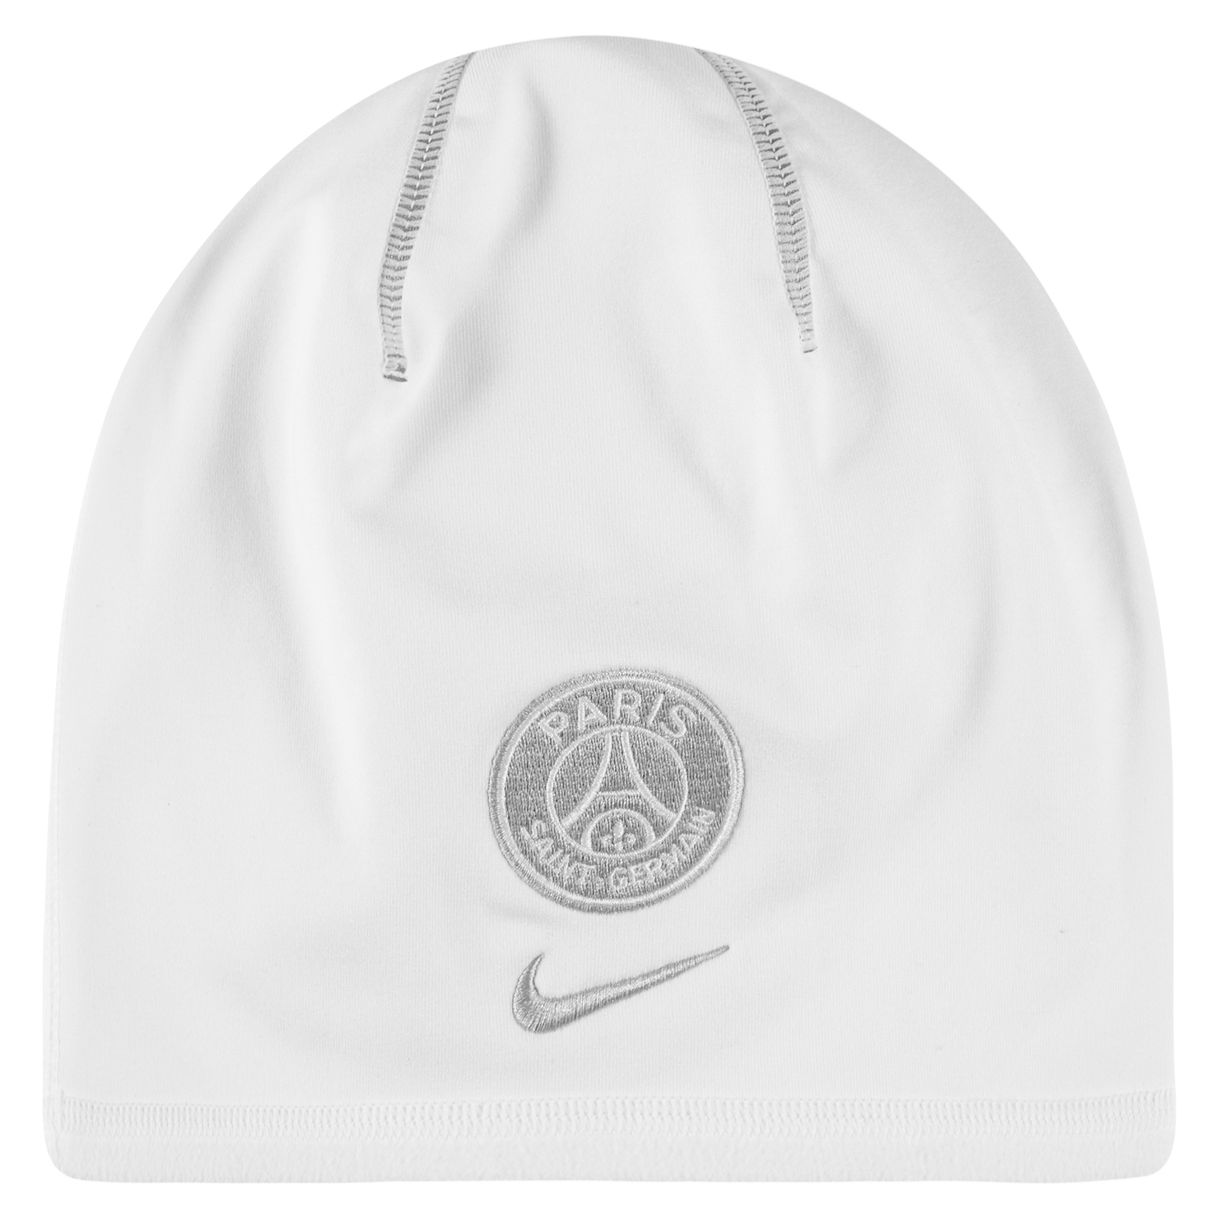 a1c9193ef84 PSG 2016-2017 Training Beanie (White)  805305-100  -  16.97 Teamzo.com